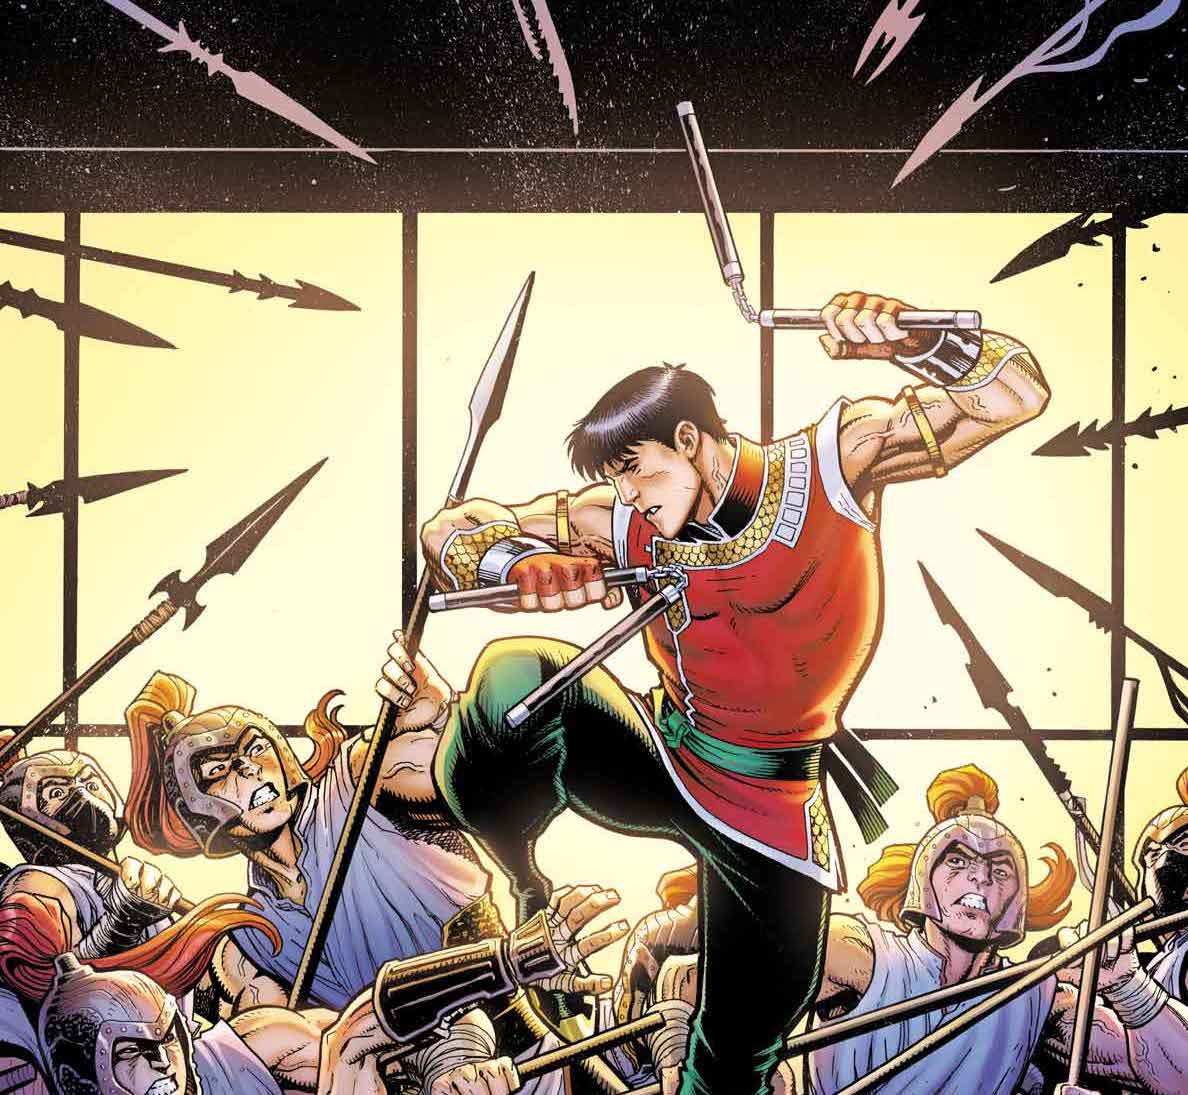 All signs point to Shang-Chi in newly revealed Arthur Adams variant cover